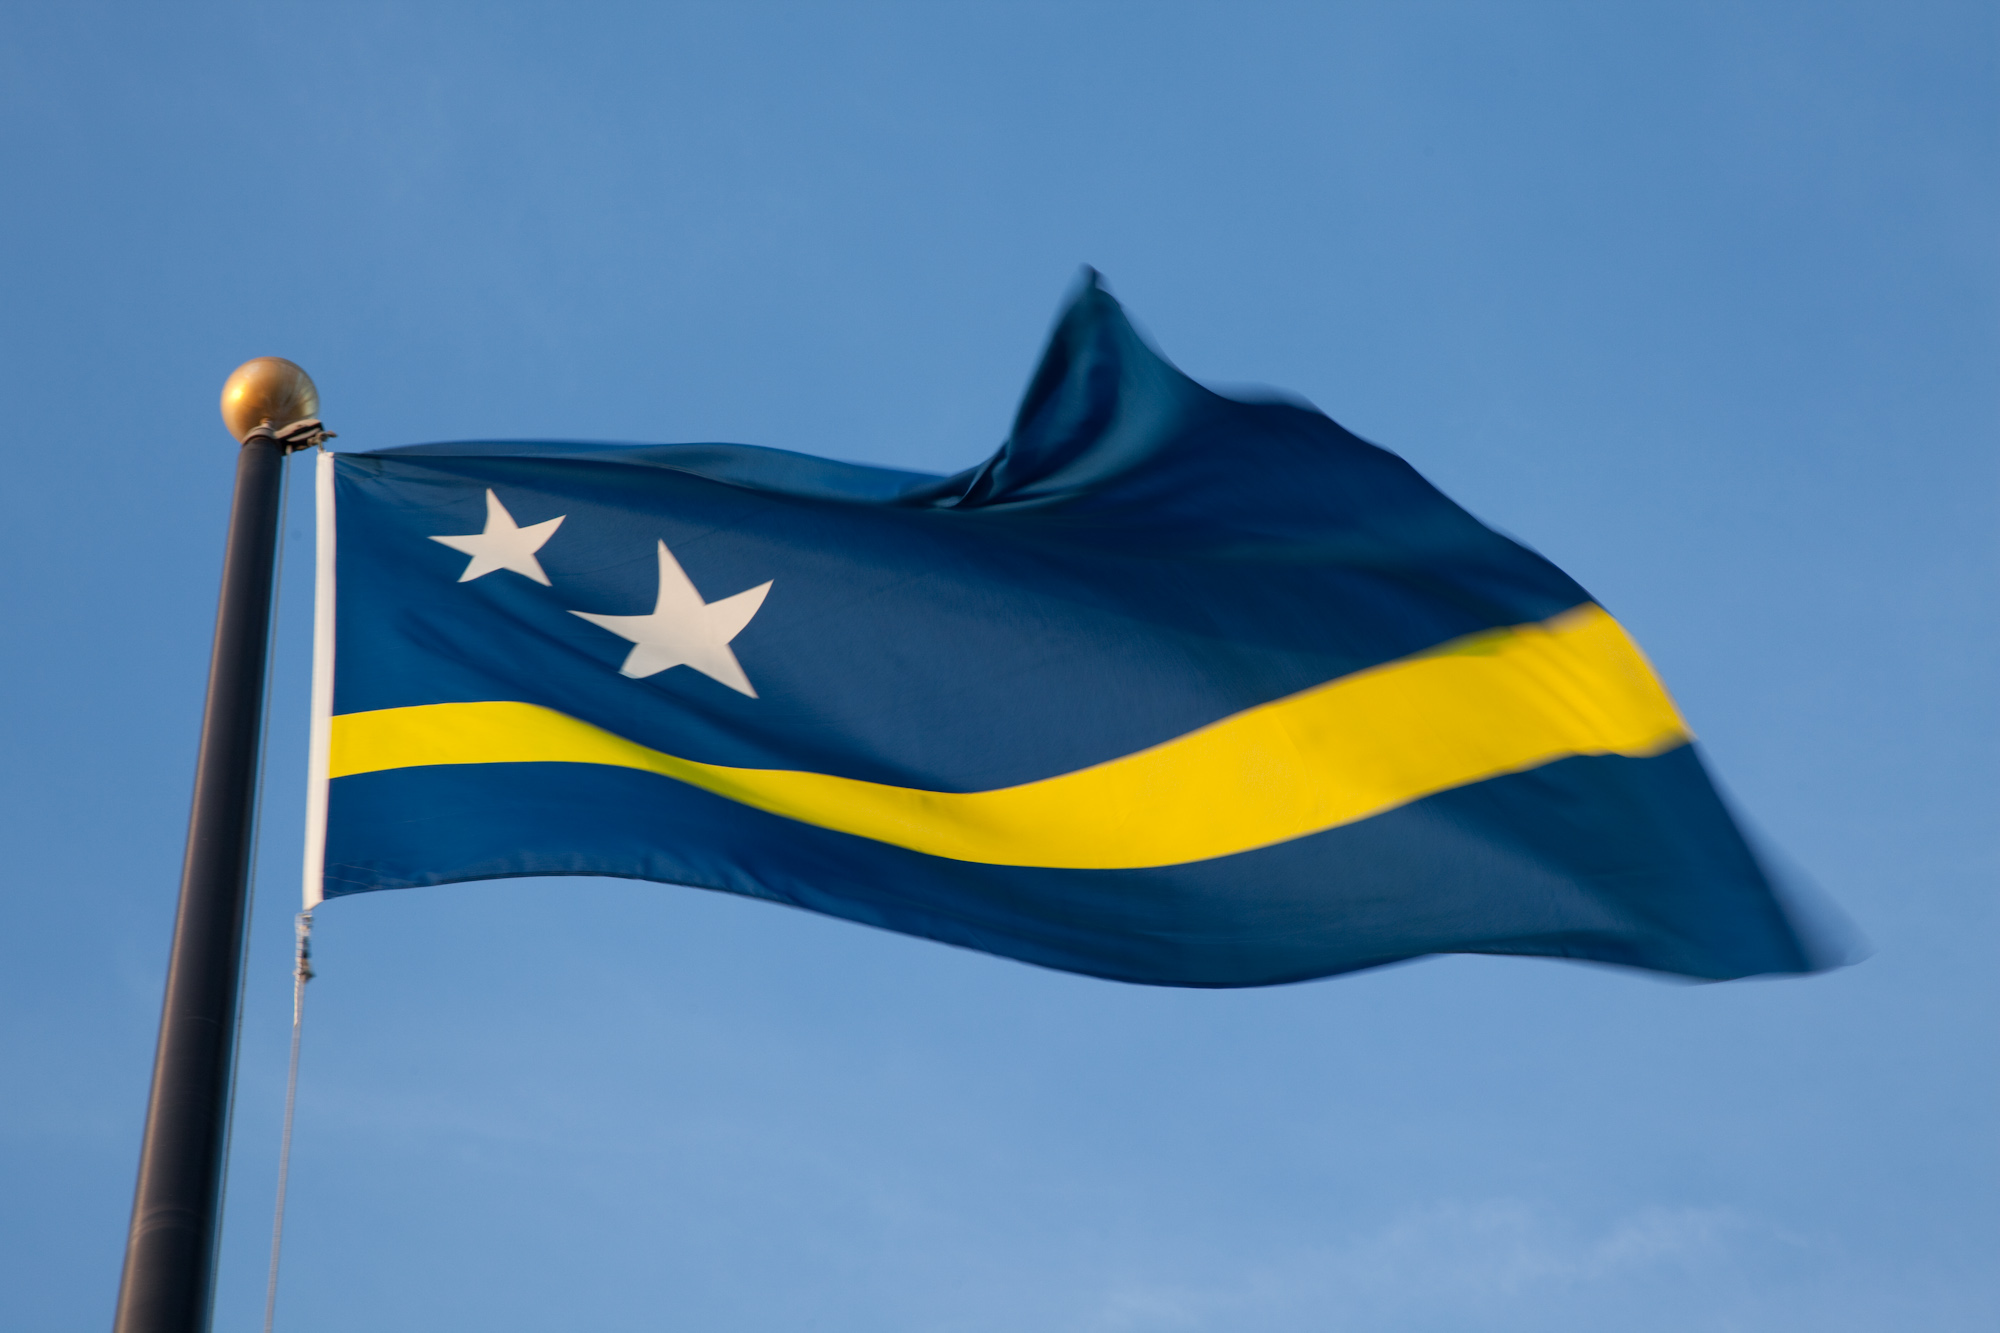 Vlag Curacao Curaçao Becomes A Country On 10 10 10